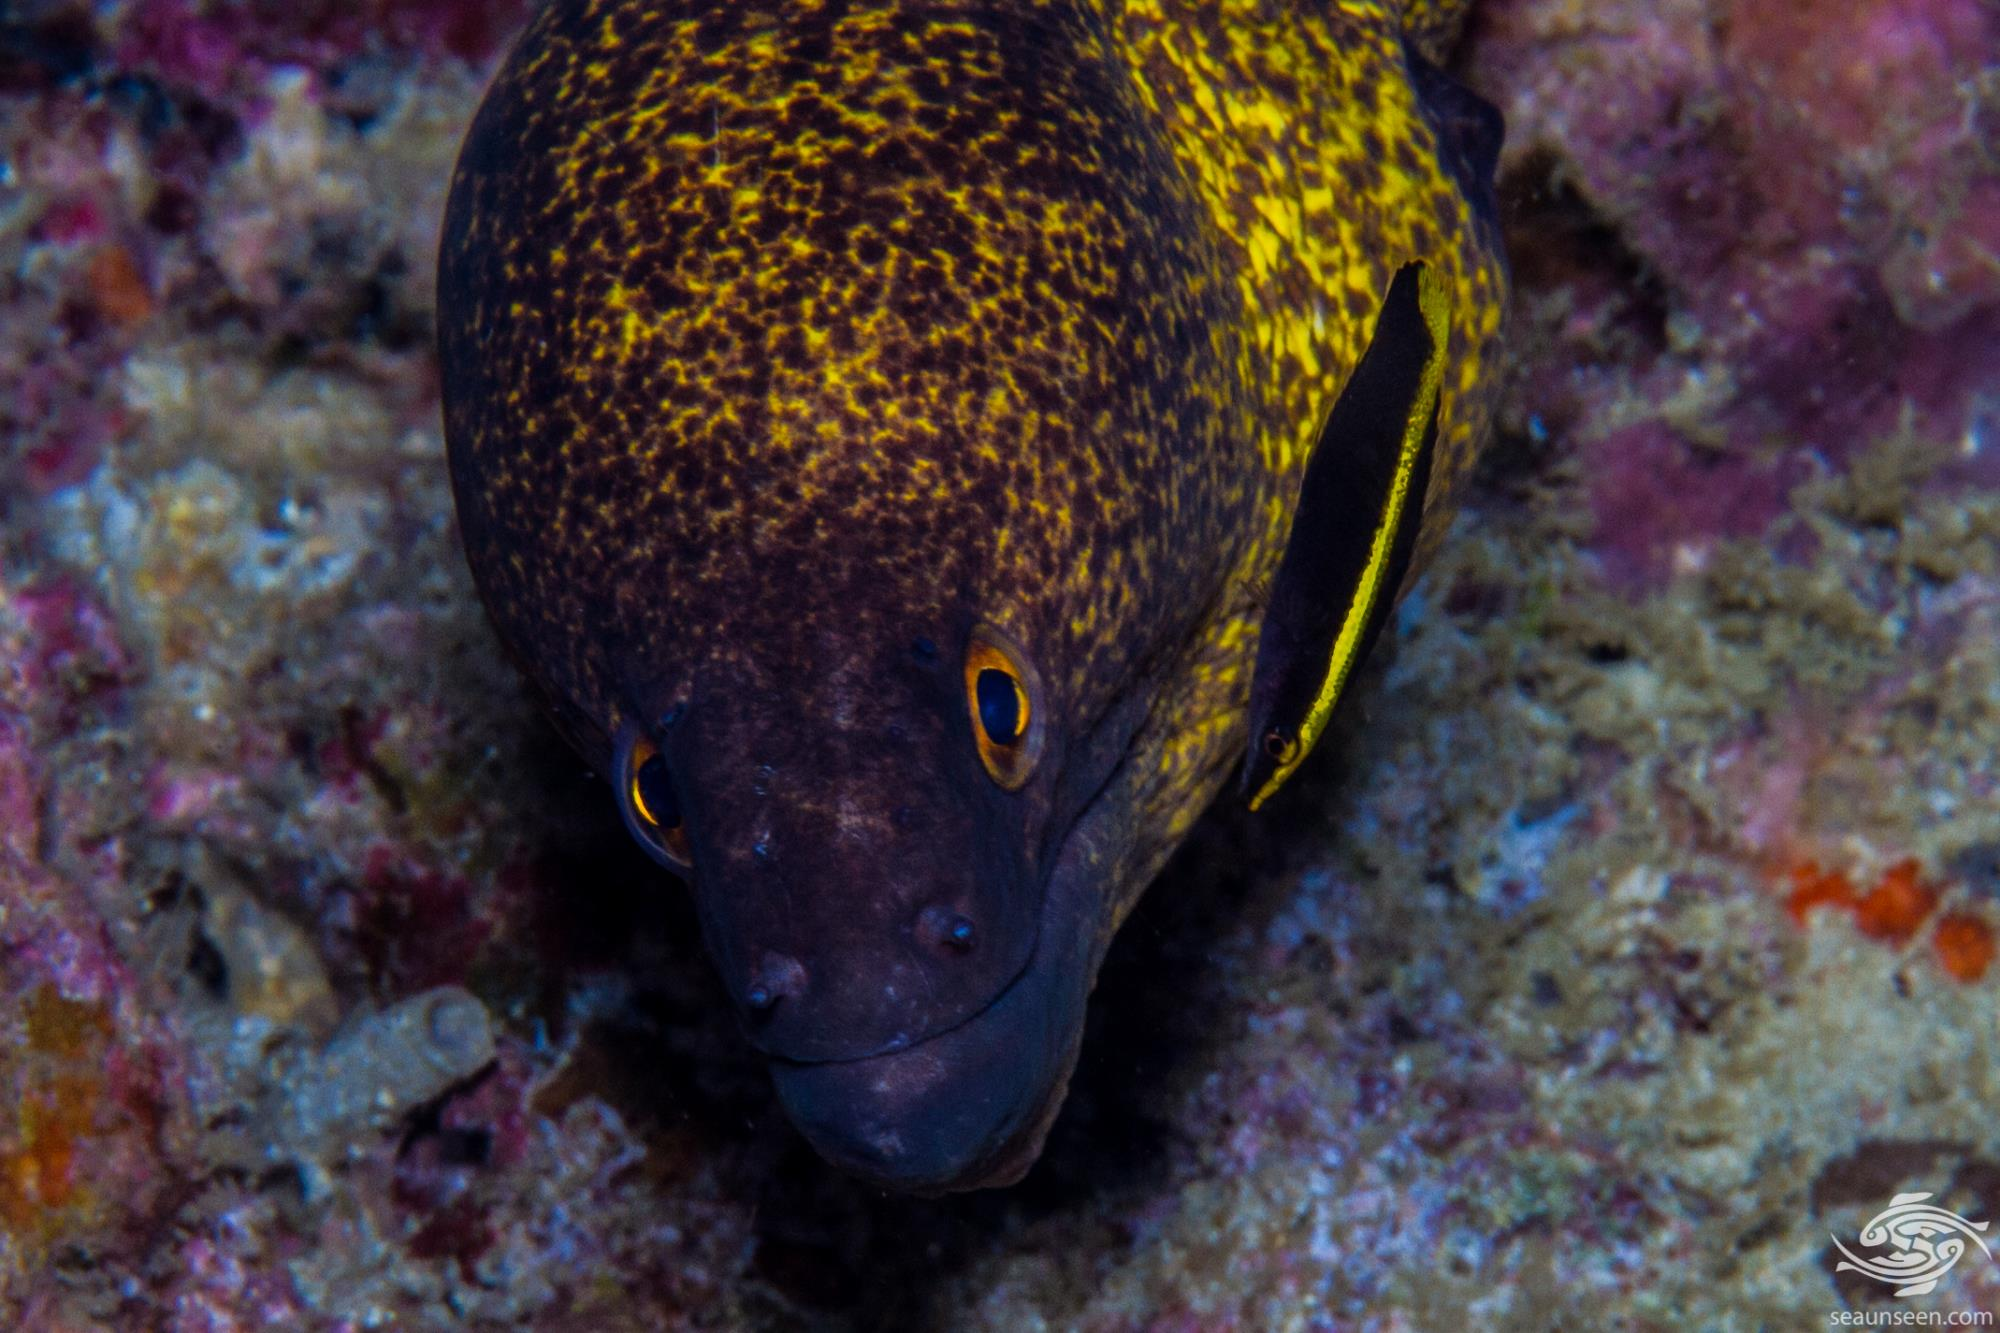 Bicolor cleaner wrasse Labroides bicolor is also known as the Two-colored Cleaner Wrasse and the Yellow Diesel Wrasse